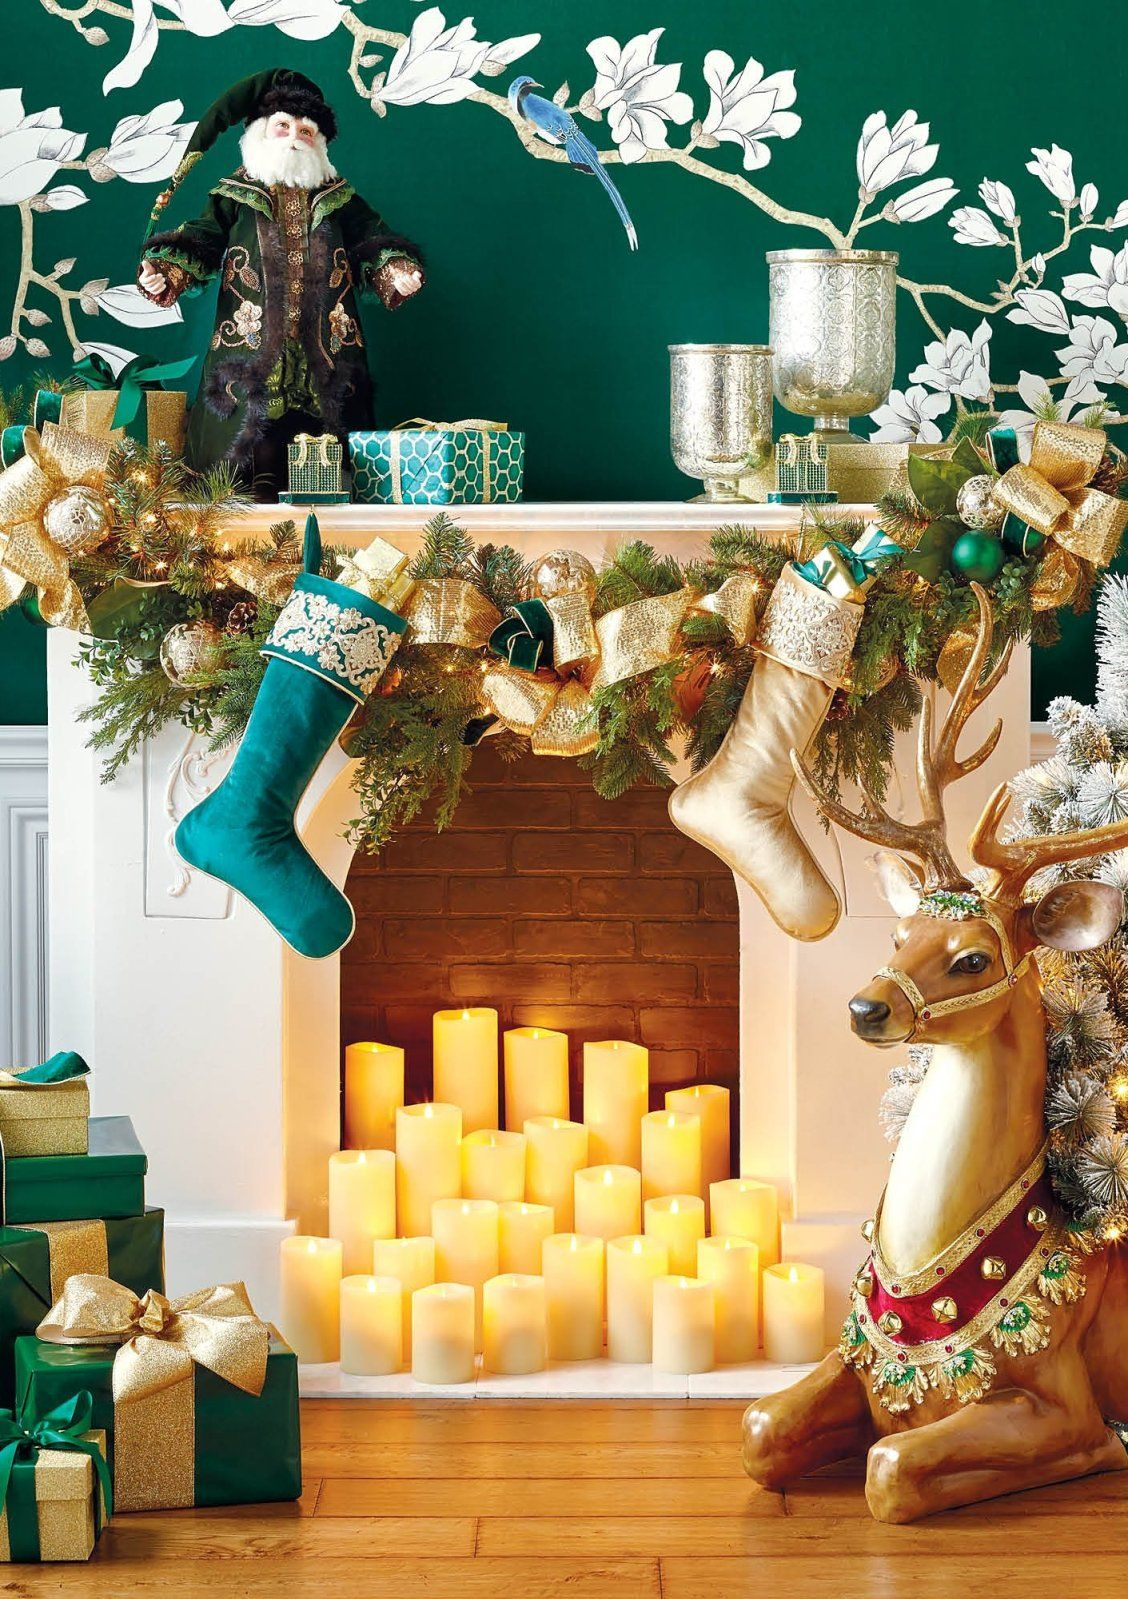 hues of emerald and gold define this opulent collection that includes greenery for every surface and